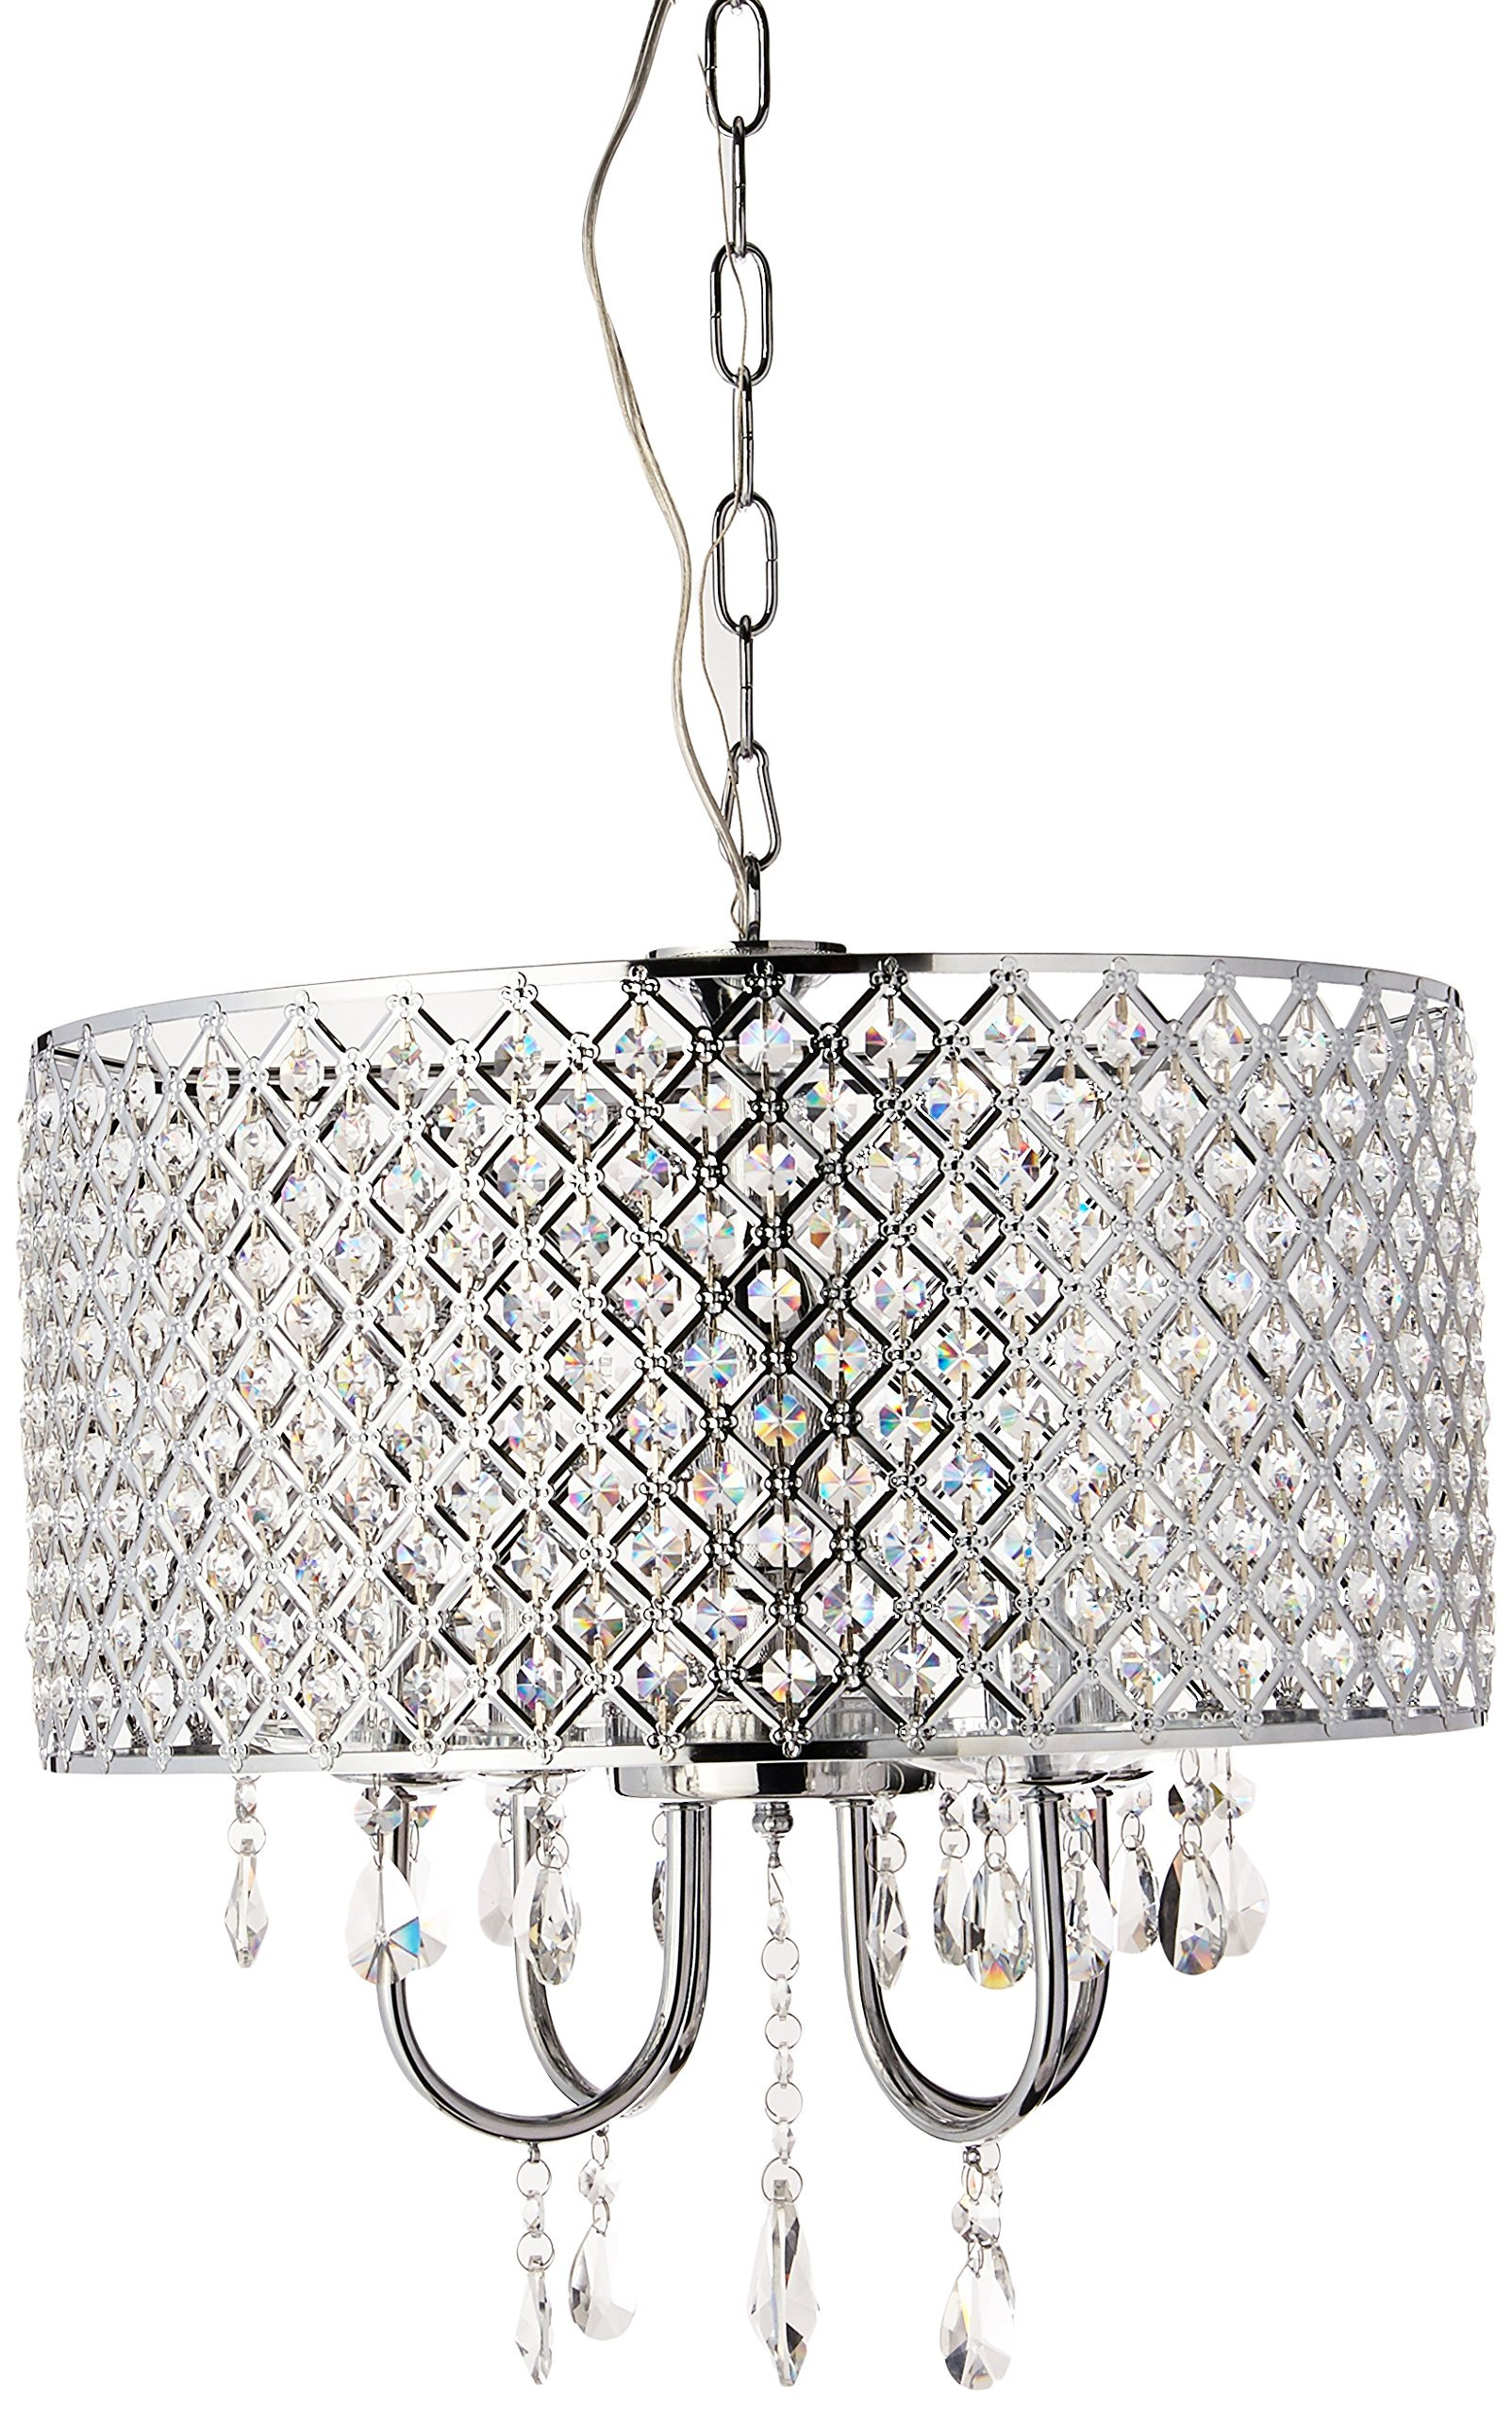 Whse of Tiffany RL5633 Deluxe Crystal Chandelier, 9'' x 17'' x 17'' by Whse of Tiffany